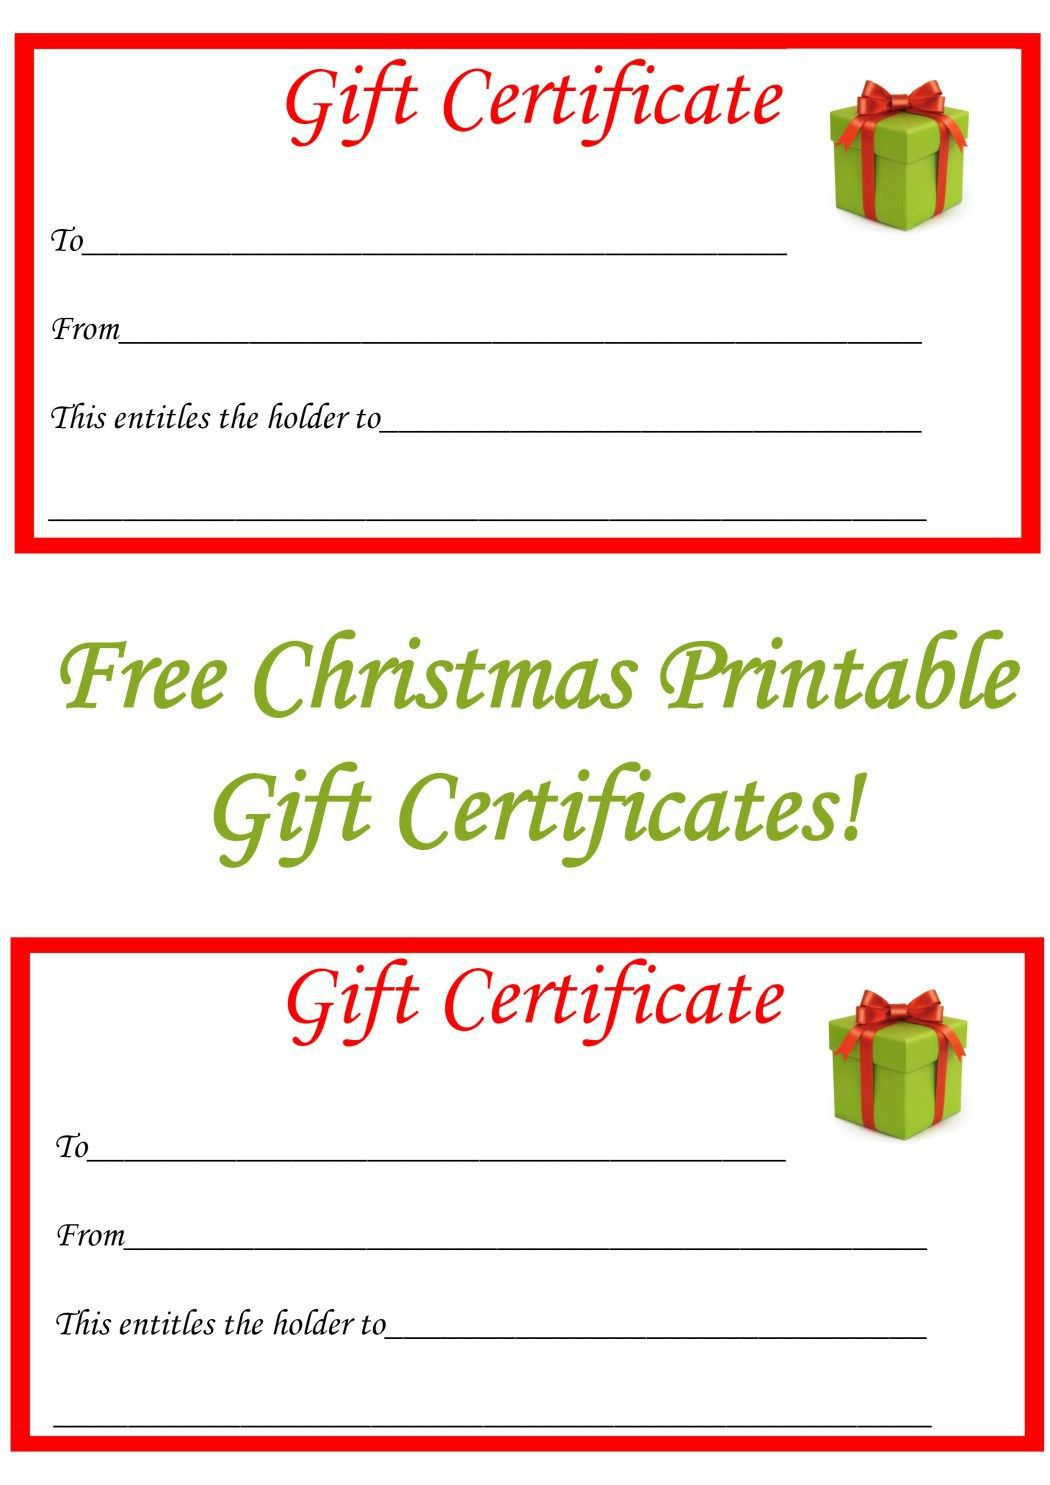 004 Dreaded Template For Christma Gift Certificate Free High Resolution  Voucher Uk Editable Download Microsoft WordFull